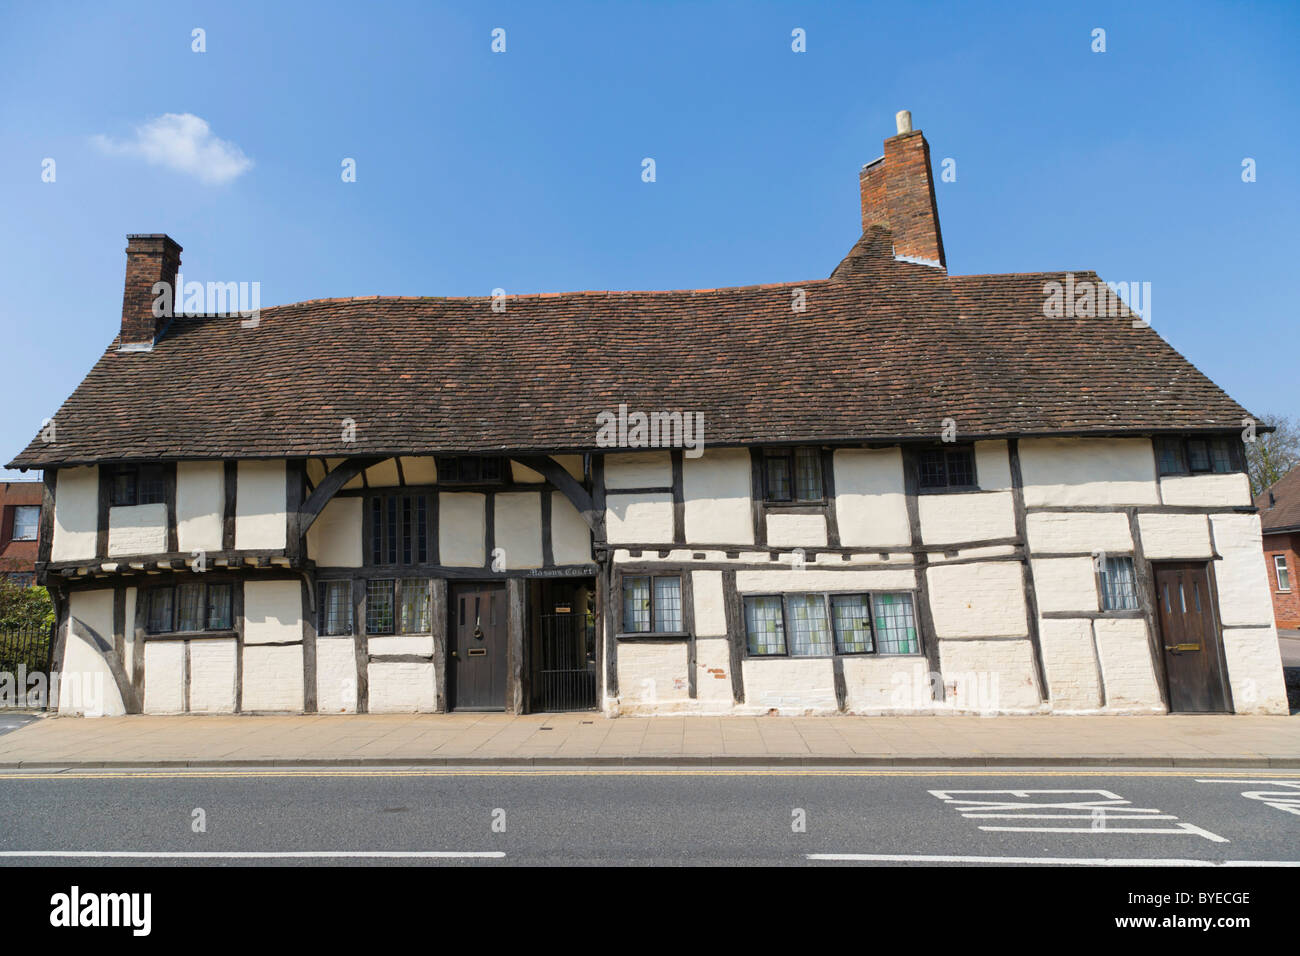 Masons Court, late medieval Wealden hall house, Rother Street, Stratford-upon-Avon, Warwickshire, England, United - Stock Image